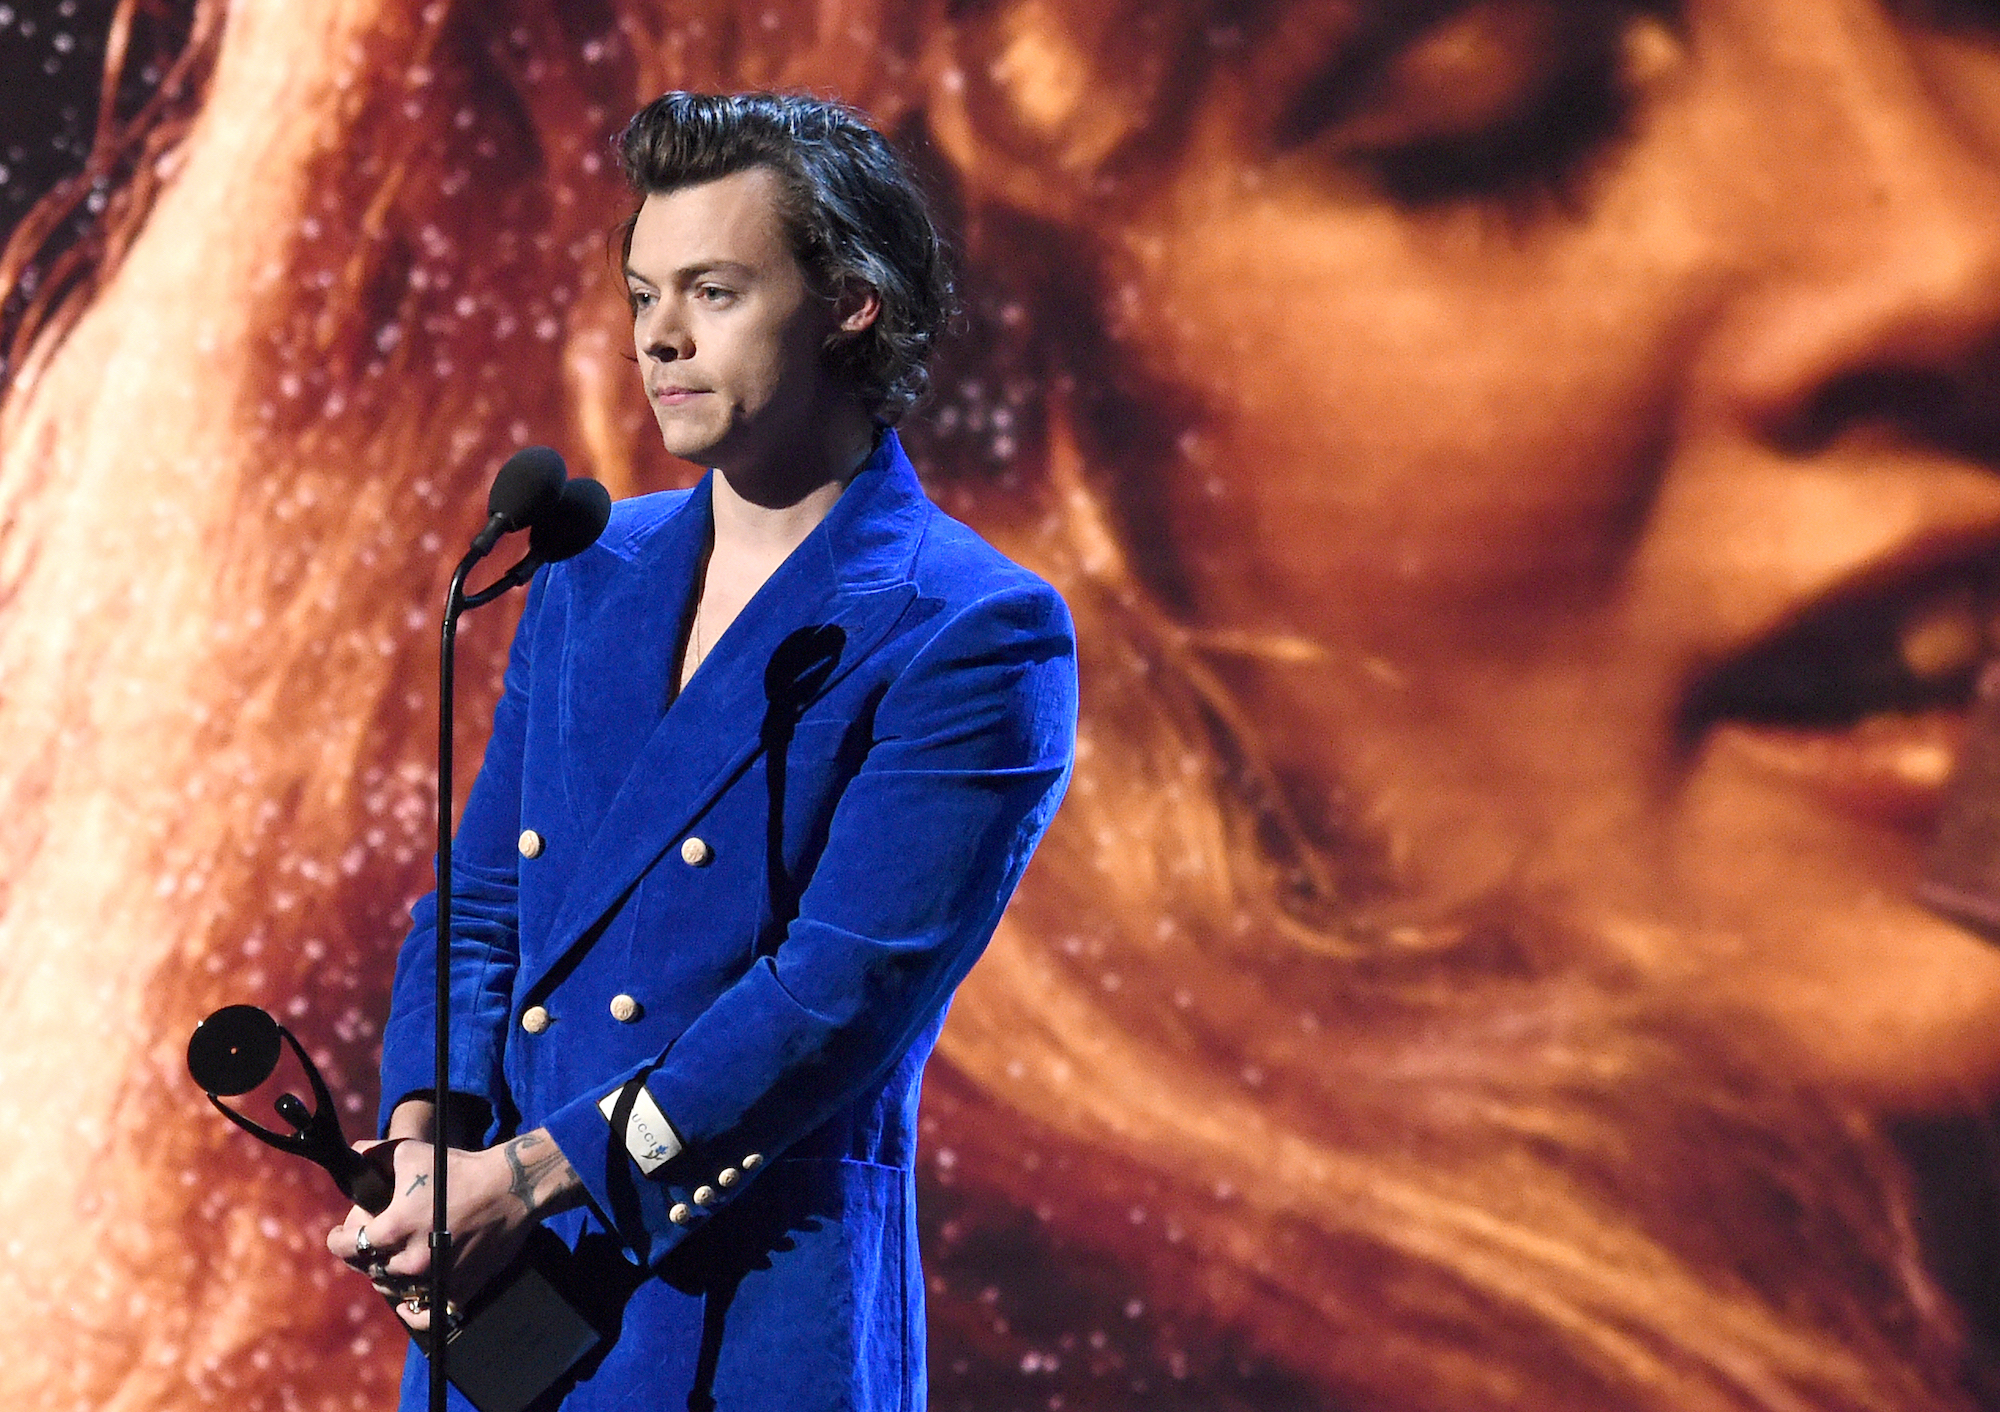 Harry Styles speaks onstage at the 2019 Rock & Roll Hall Of Fame Induction Ceremony on March 29, 2019 in New York City.